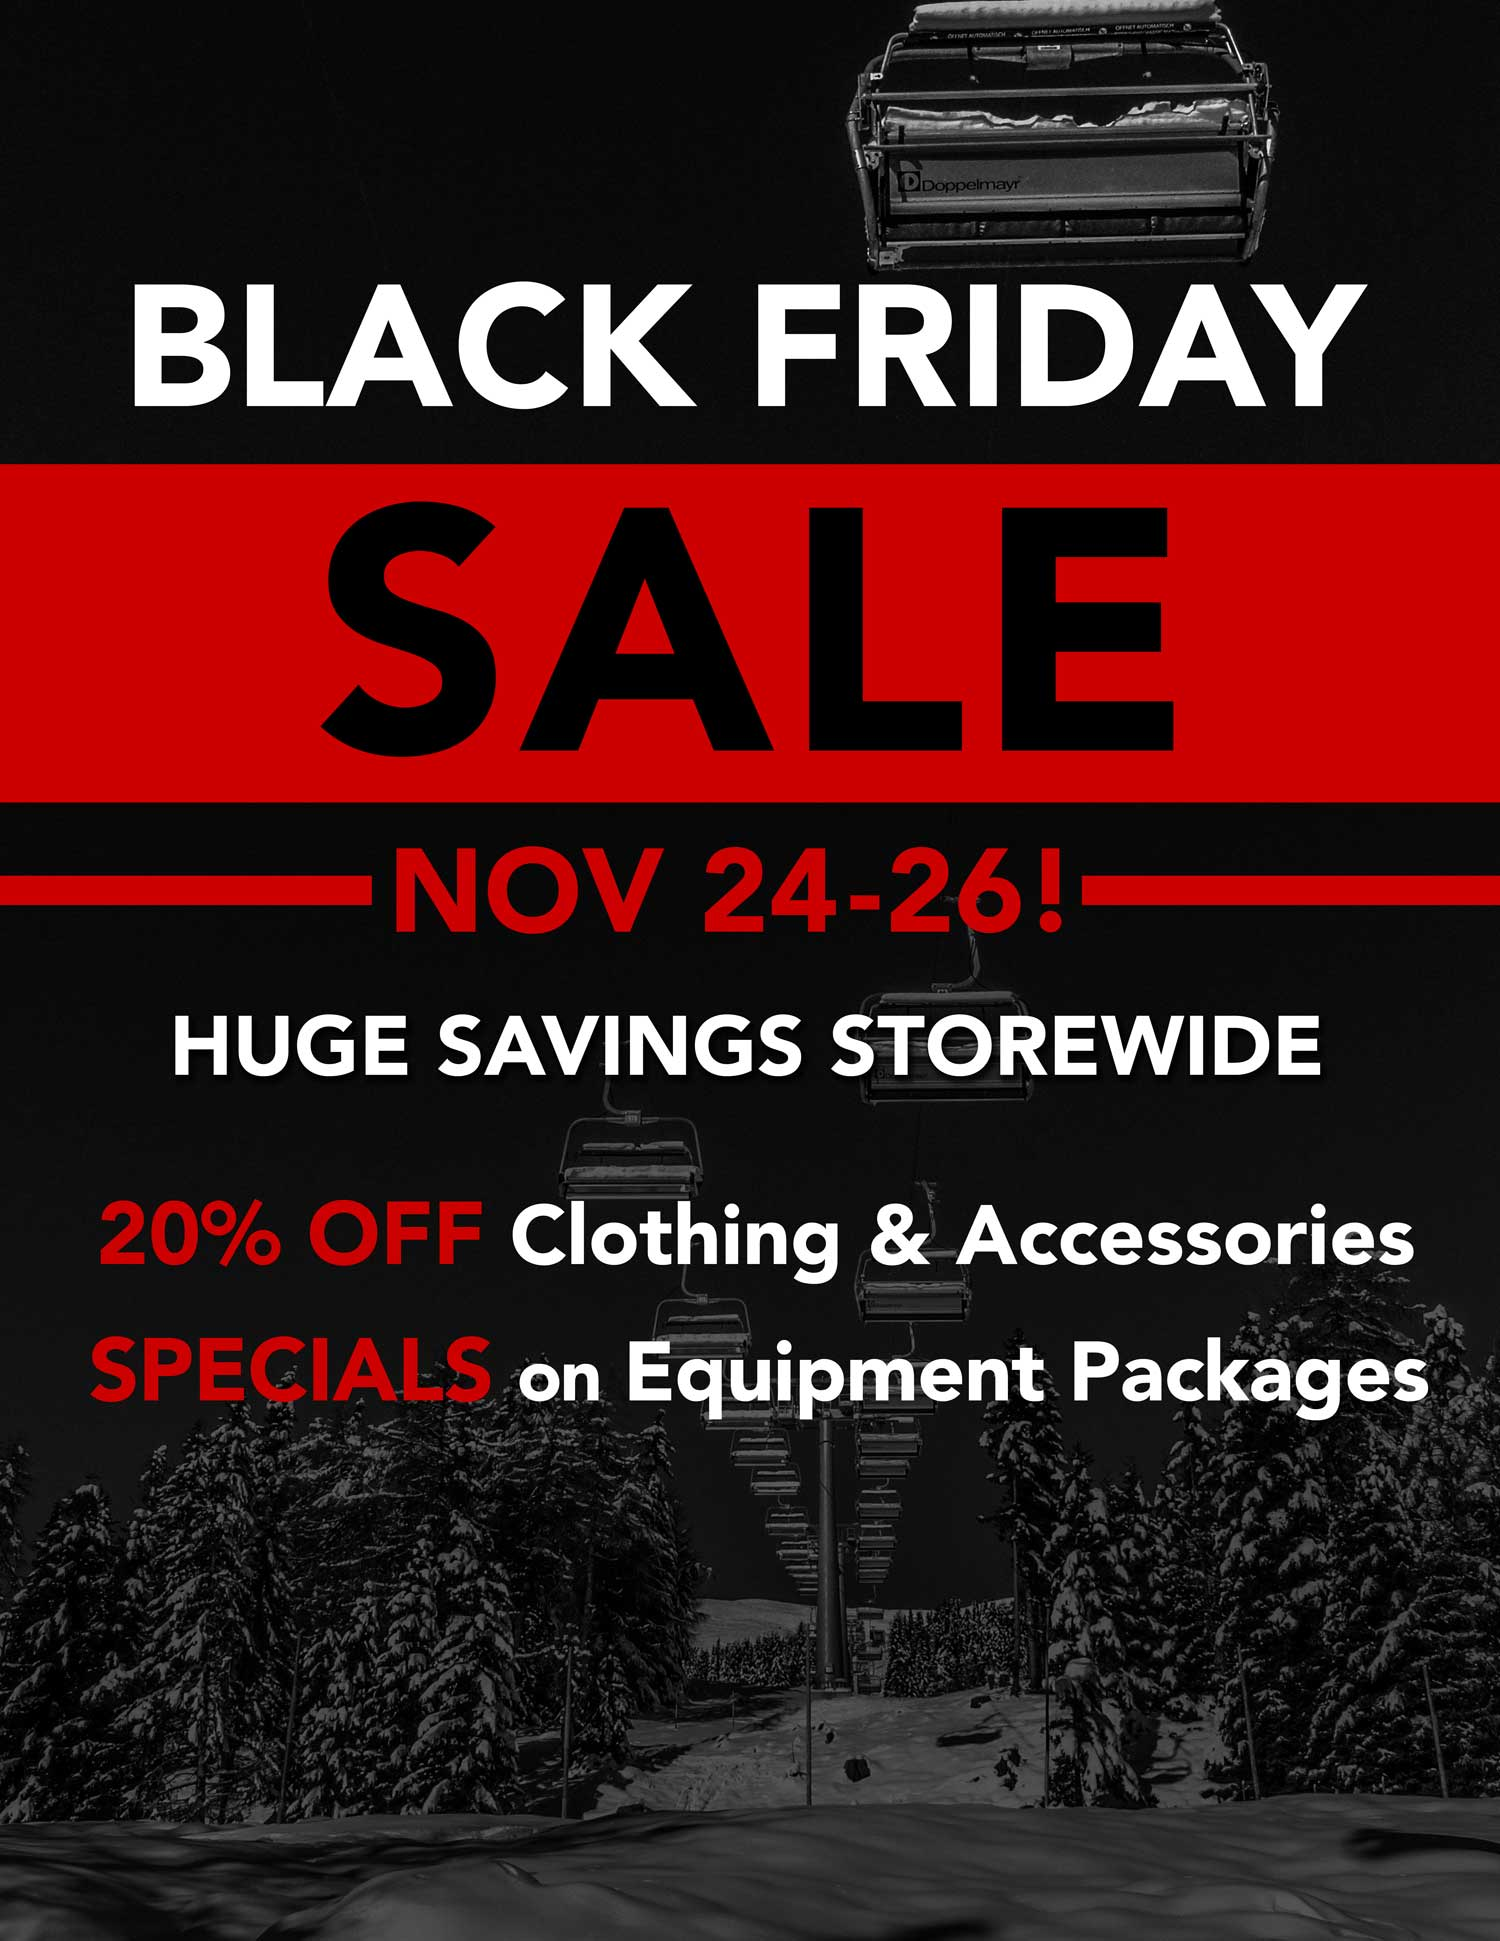 Abom Black Friday Sale Nov 24 - 26 In-store only! Save 20% on all clothing & Accessories as well as Package Specials on all Equipment, ski, snowboard or cross-country!